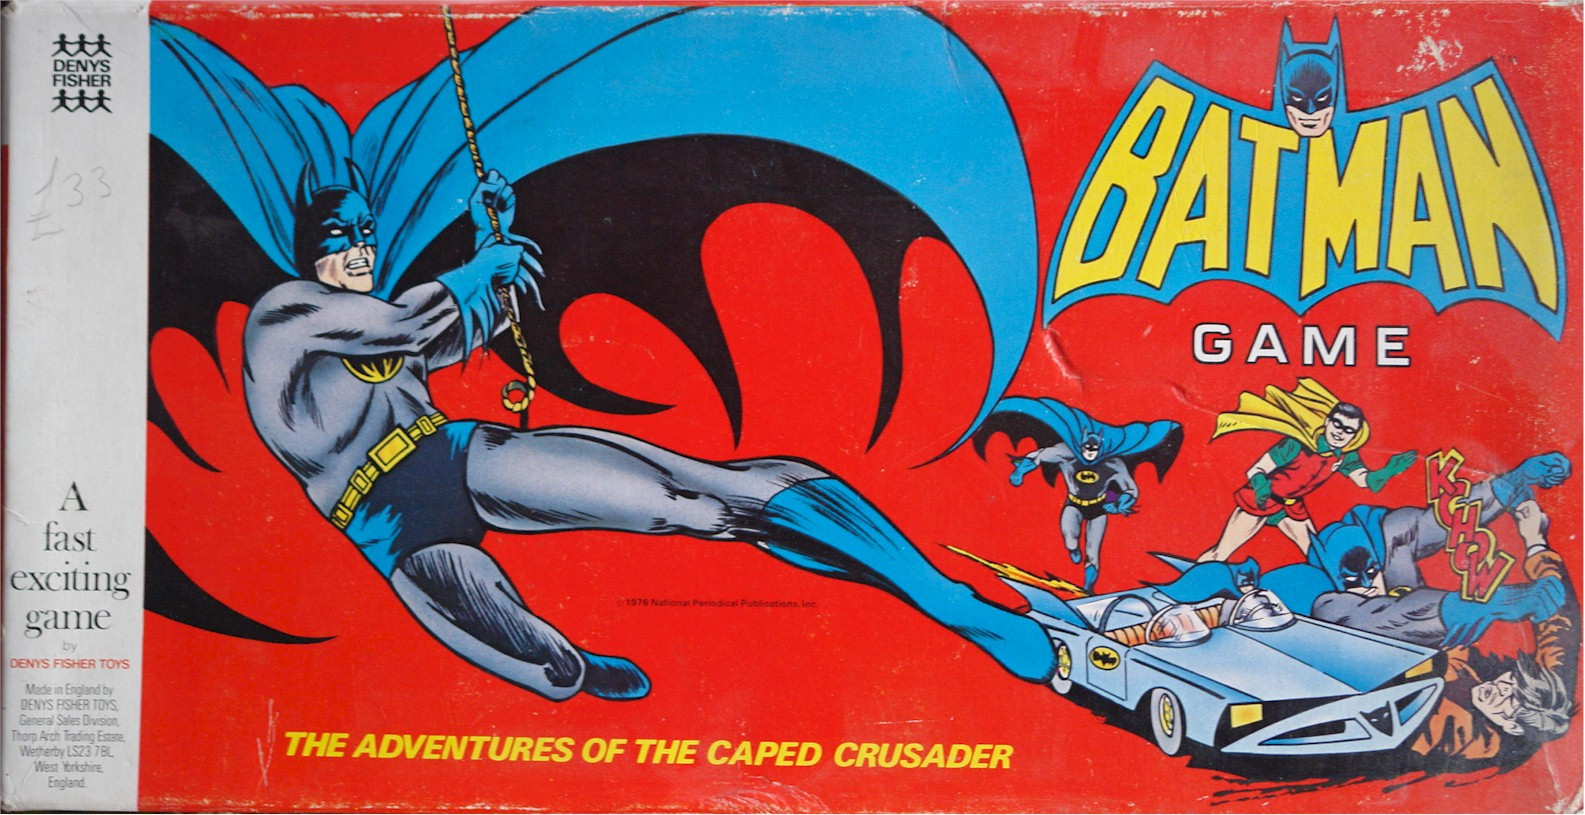 Bat-Man board game by Denys Fisher.